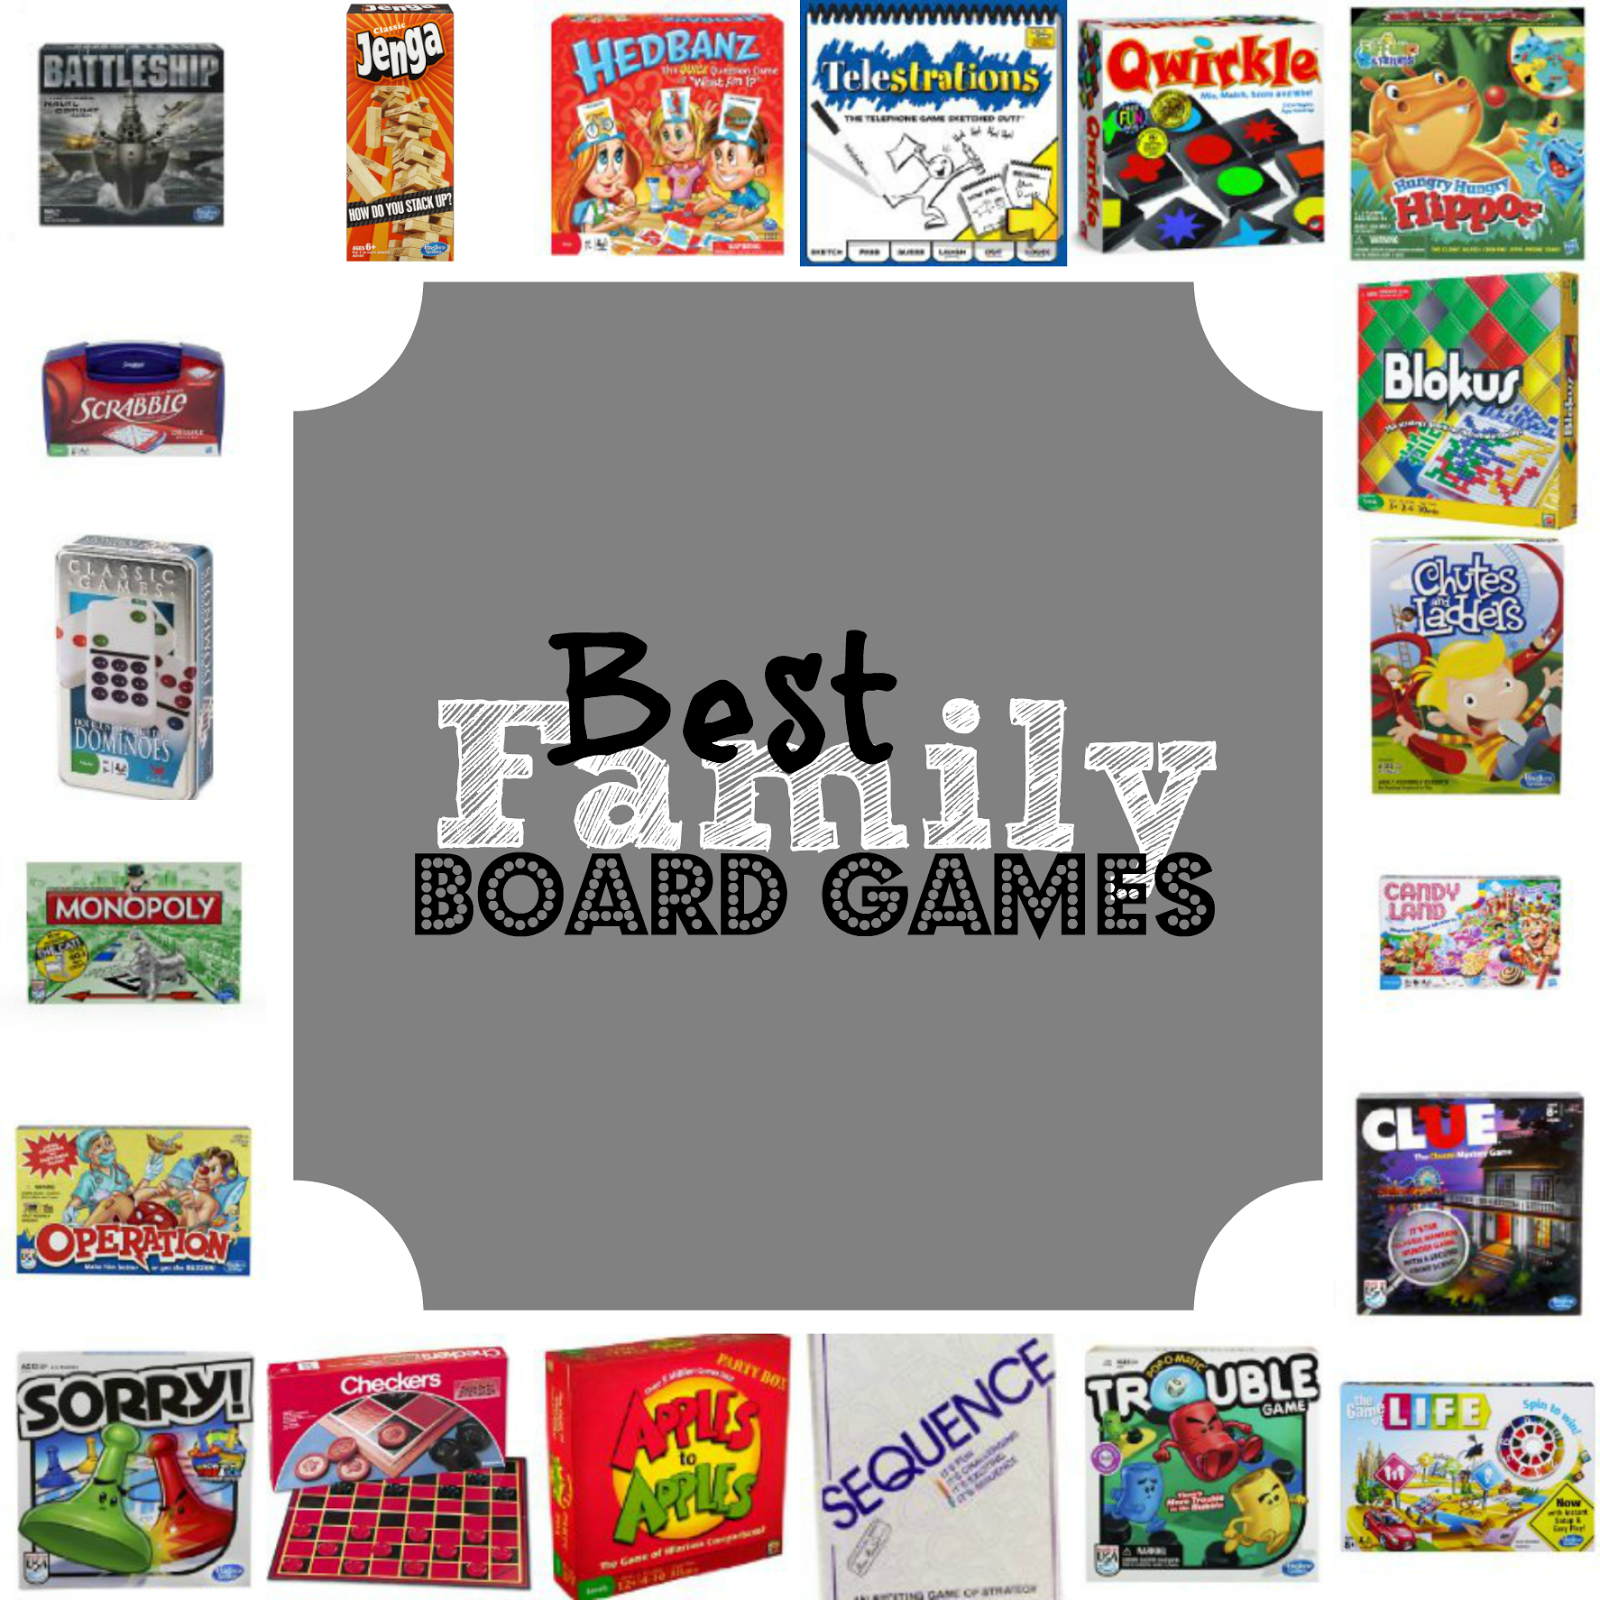 20 Best Board Games for Families 2020 - Board Games for ...